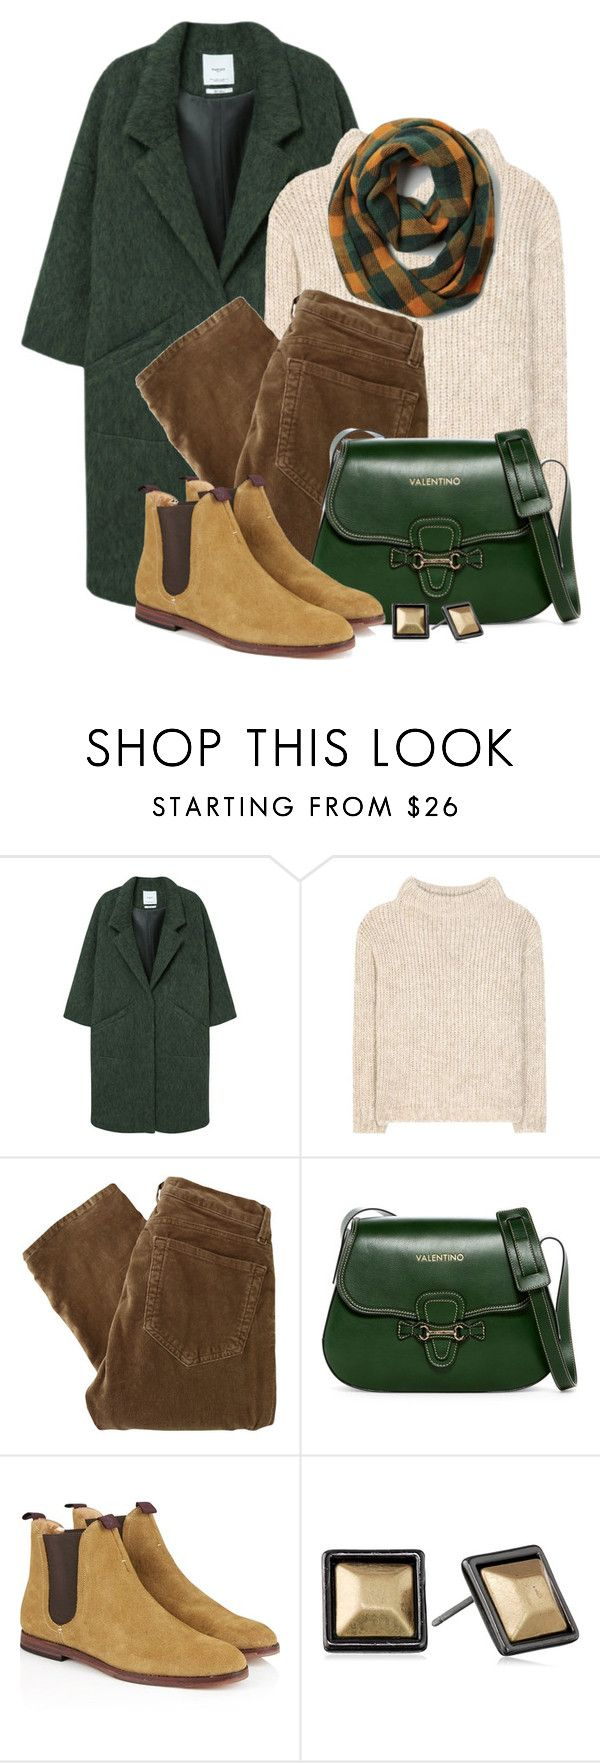 """""""Hudson Chelsea Boots & Valentino Bag"""" by brendariley-1 ❤ liked on Polyvore featuring MANGO, Tom Ford, J Brand, Mario Valentino, Hudson and Kenneth Cole"""